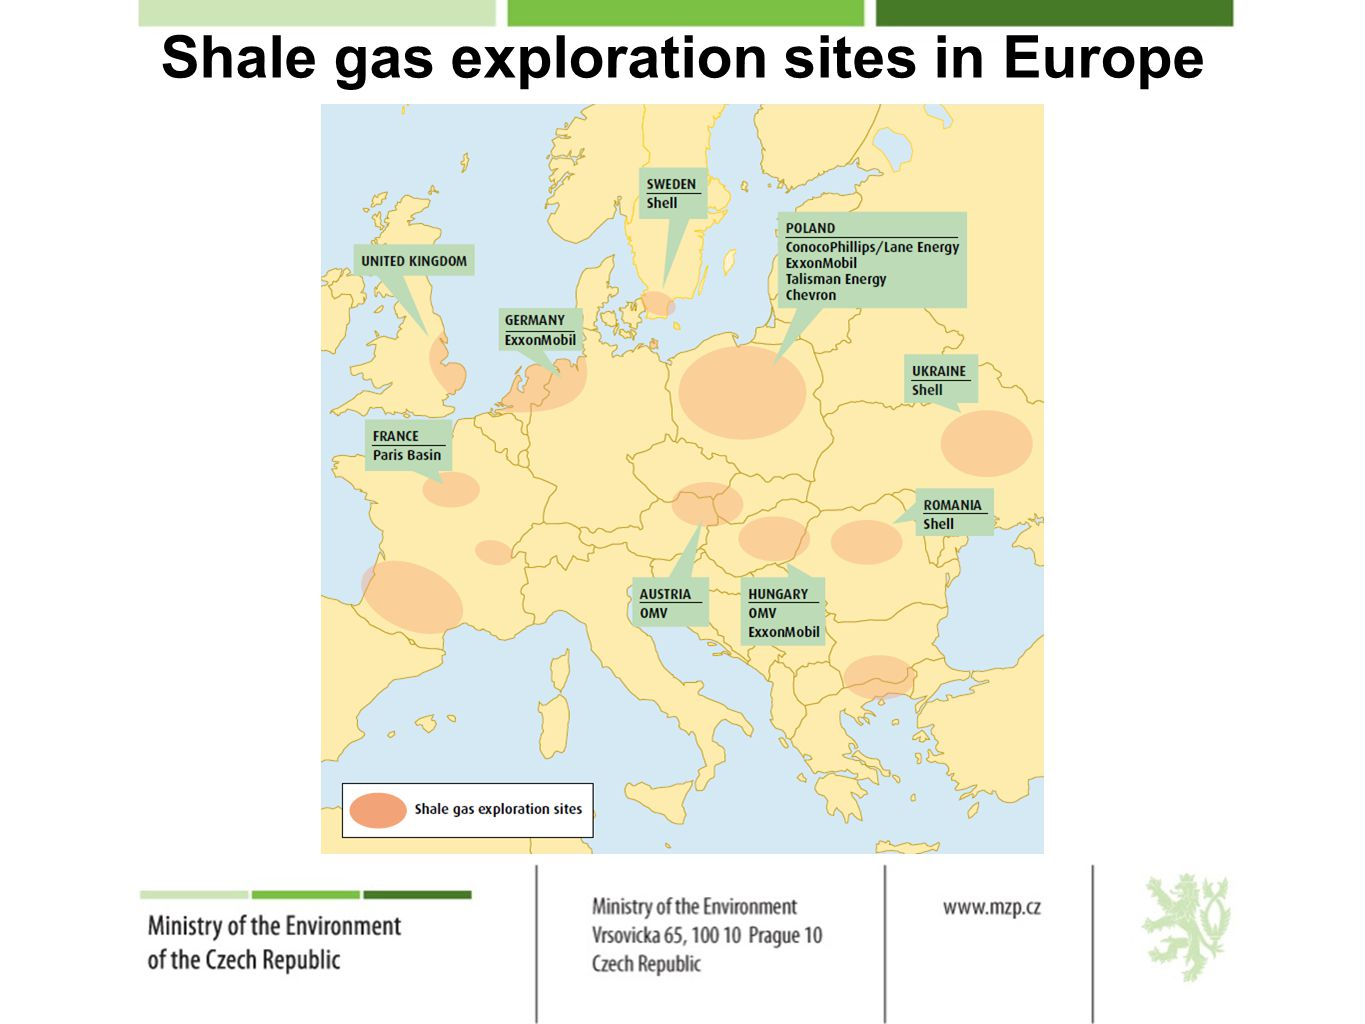 Shale gas exploration sites in Europe